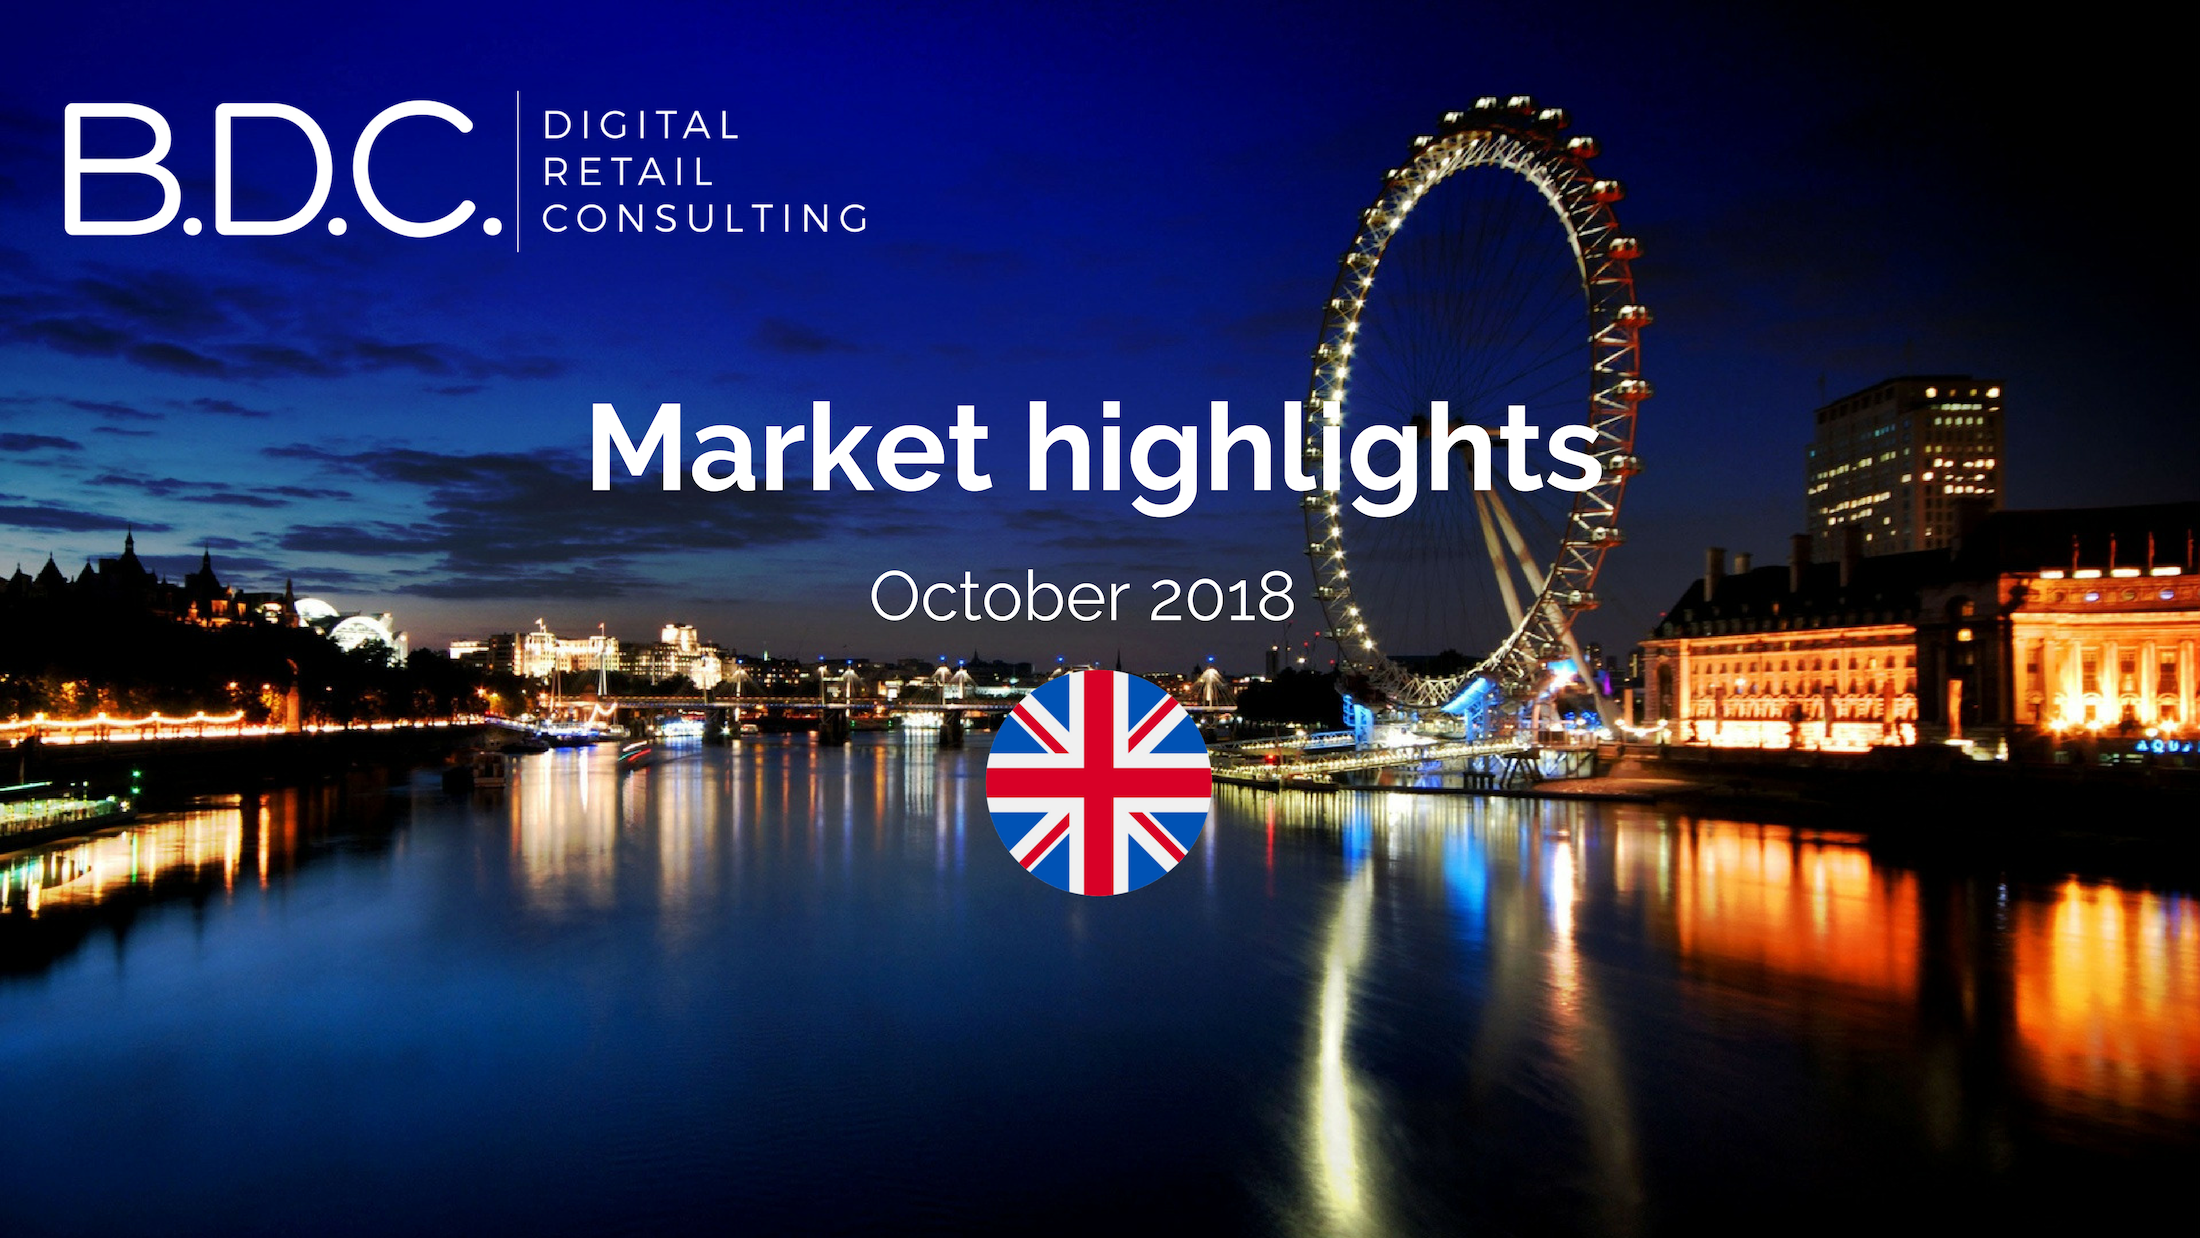 Trends News 13 - UK MARKET HIGHLIGHTS – OCTOBER 2018